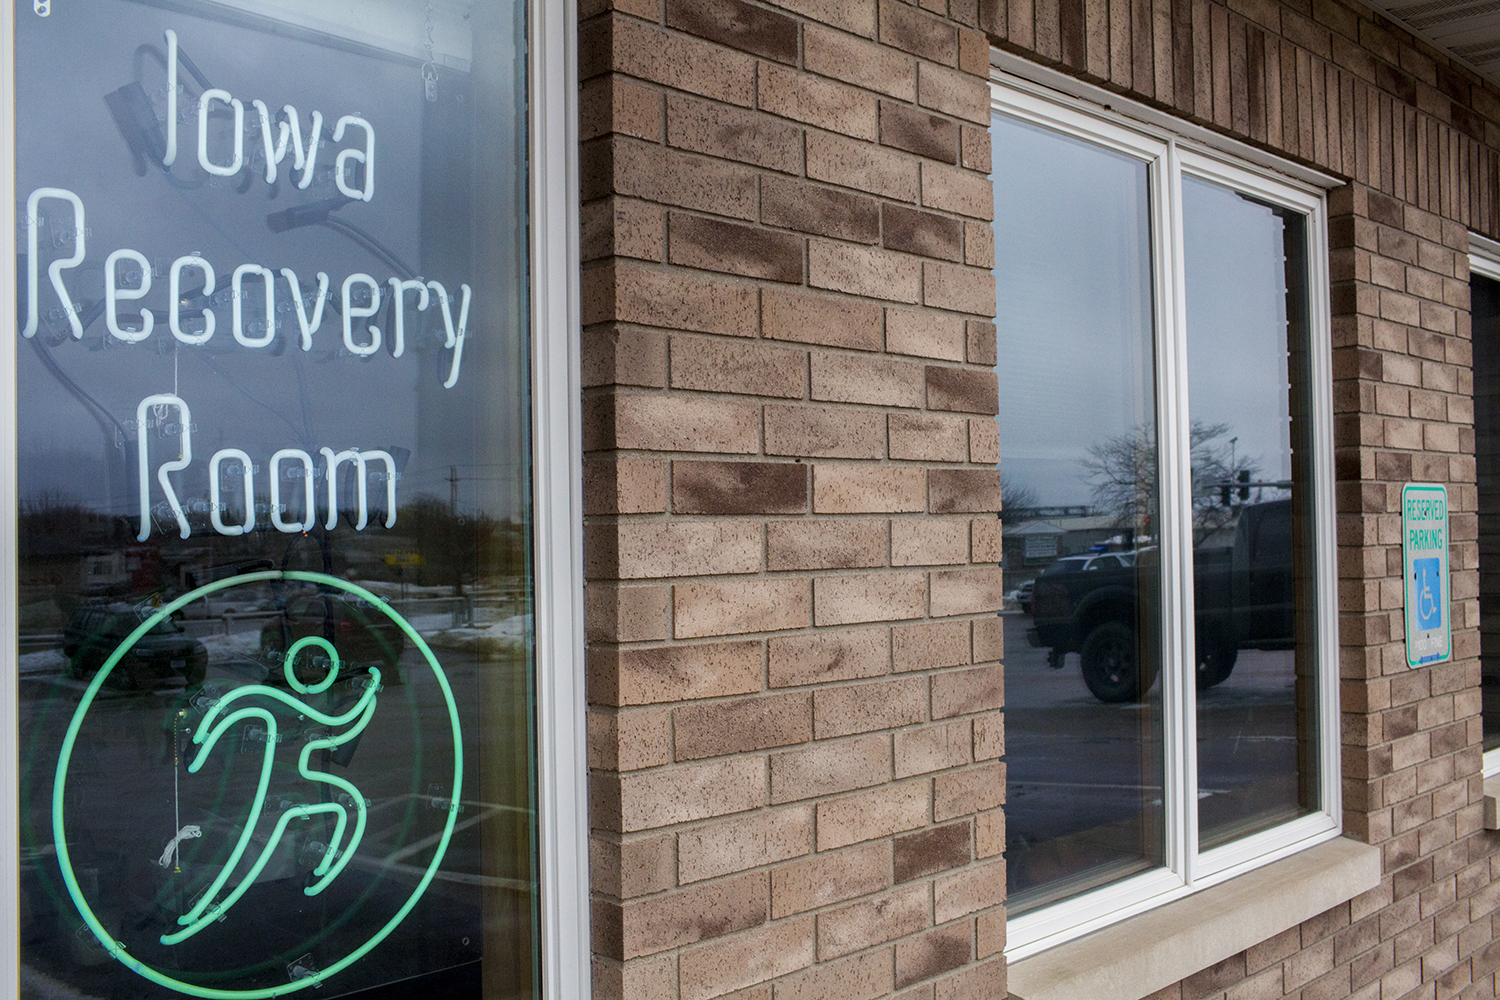 The Iowa Recovery Room is seen on Wednesday, February 6th, 2018. The Iowa Recovery Room is a clinic specializing in non-traditional treatment for mental health issues such as anxiety, depression and PTSD.